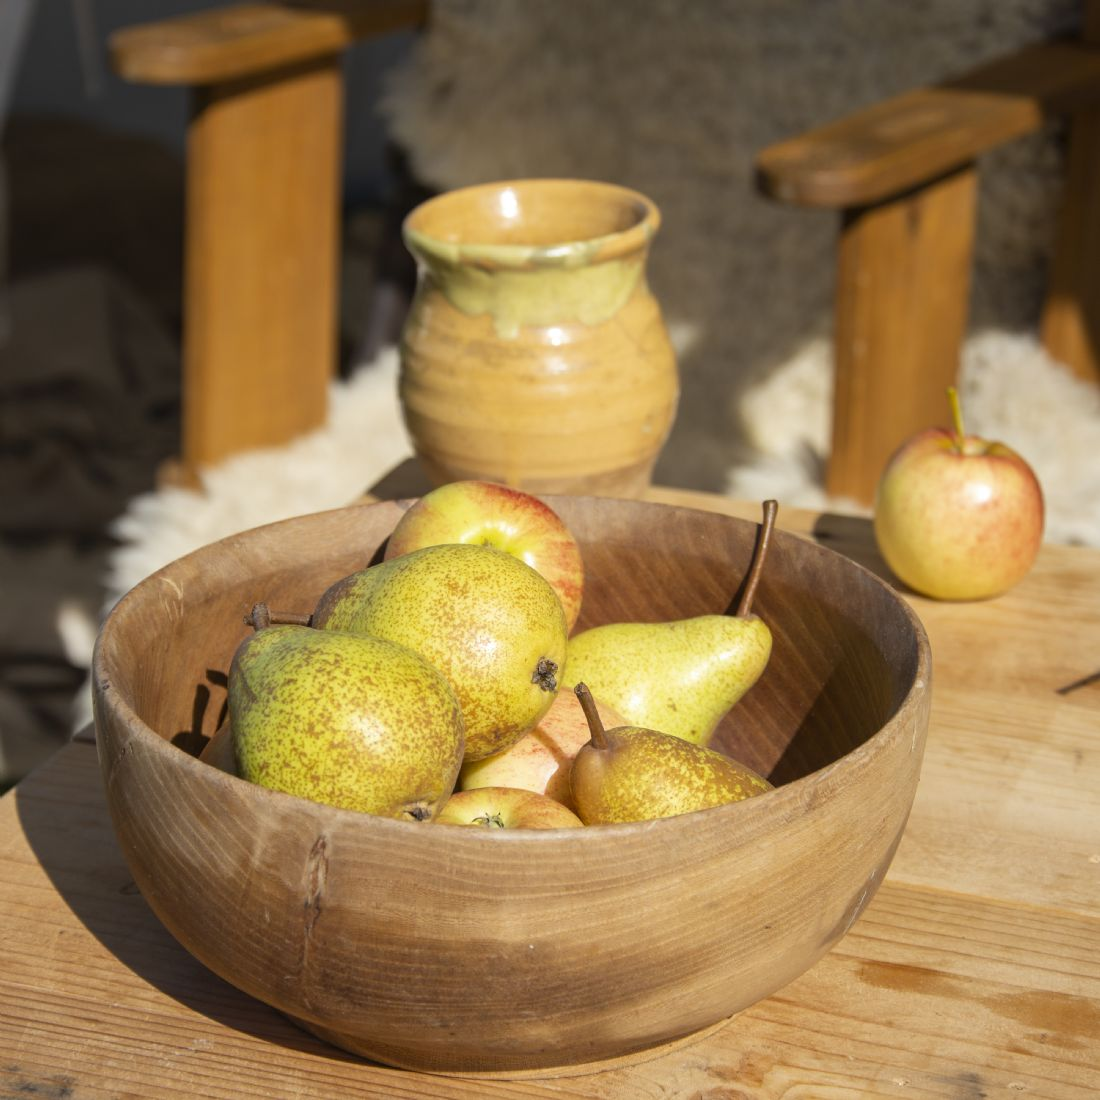 Steve Stamford | A bowl of pears